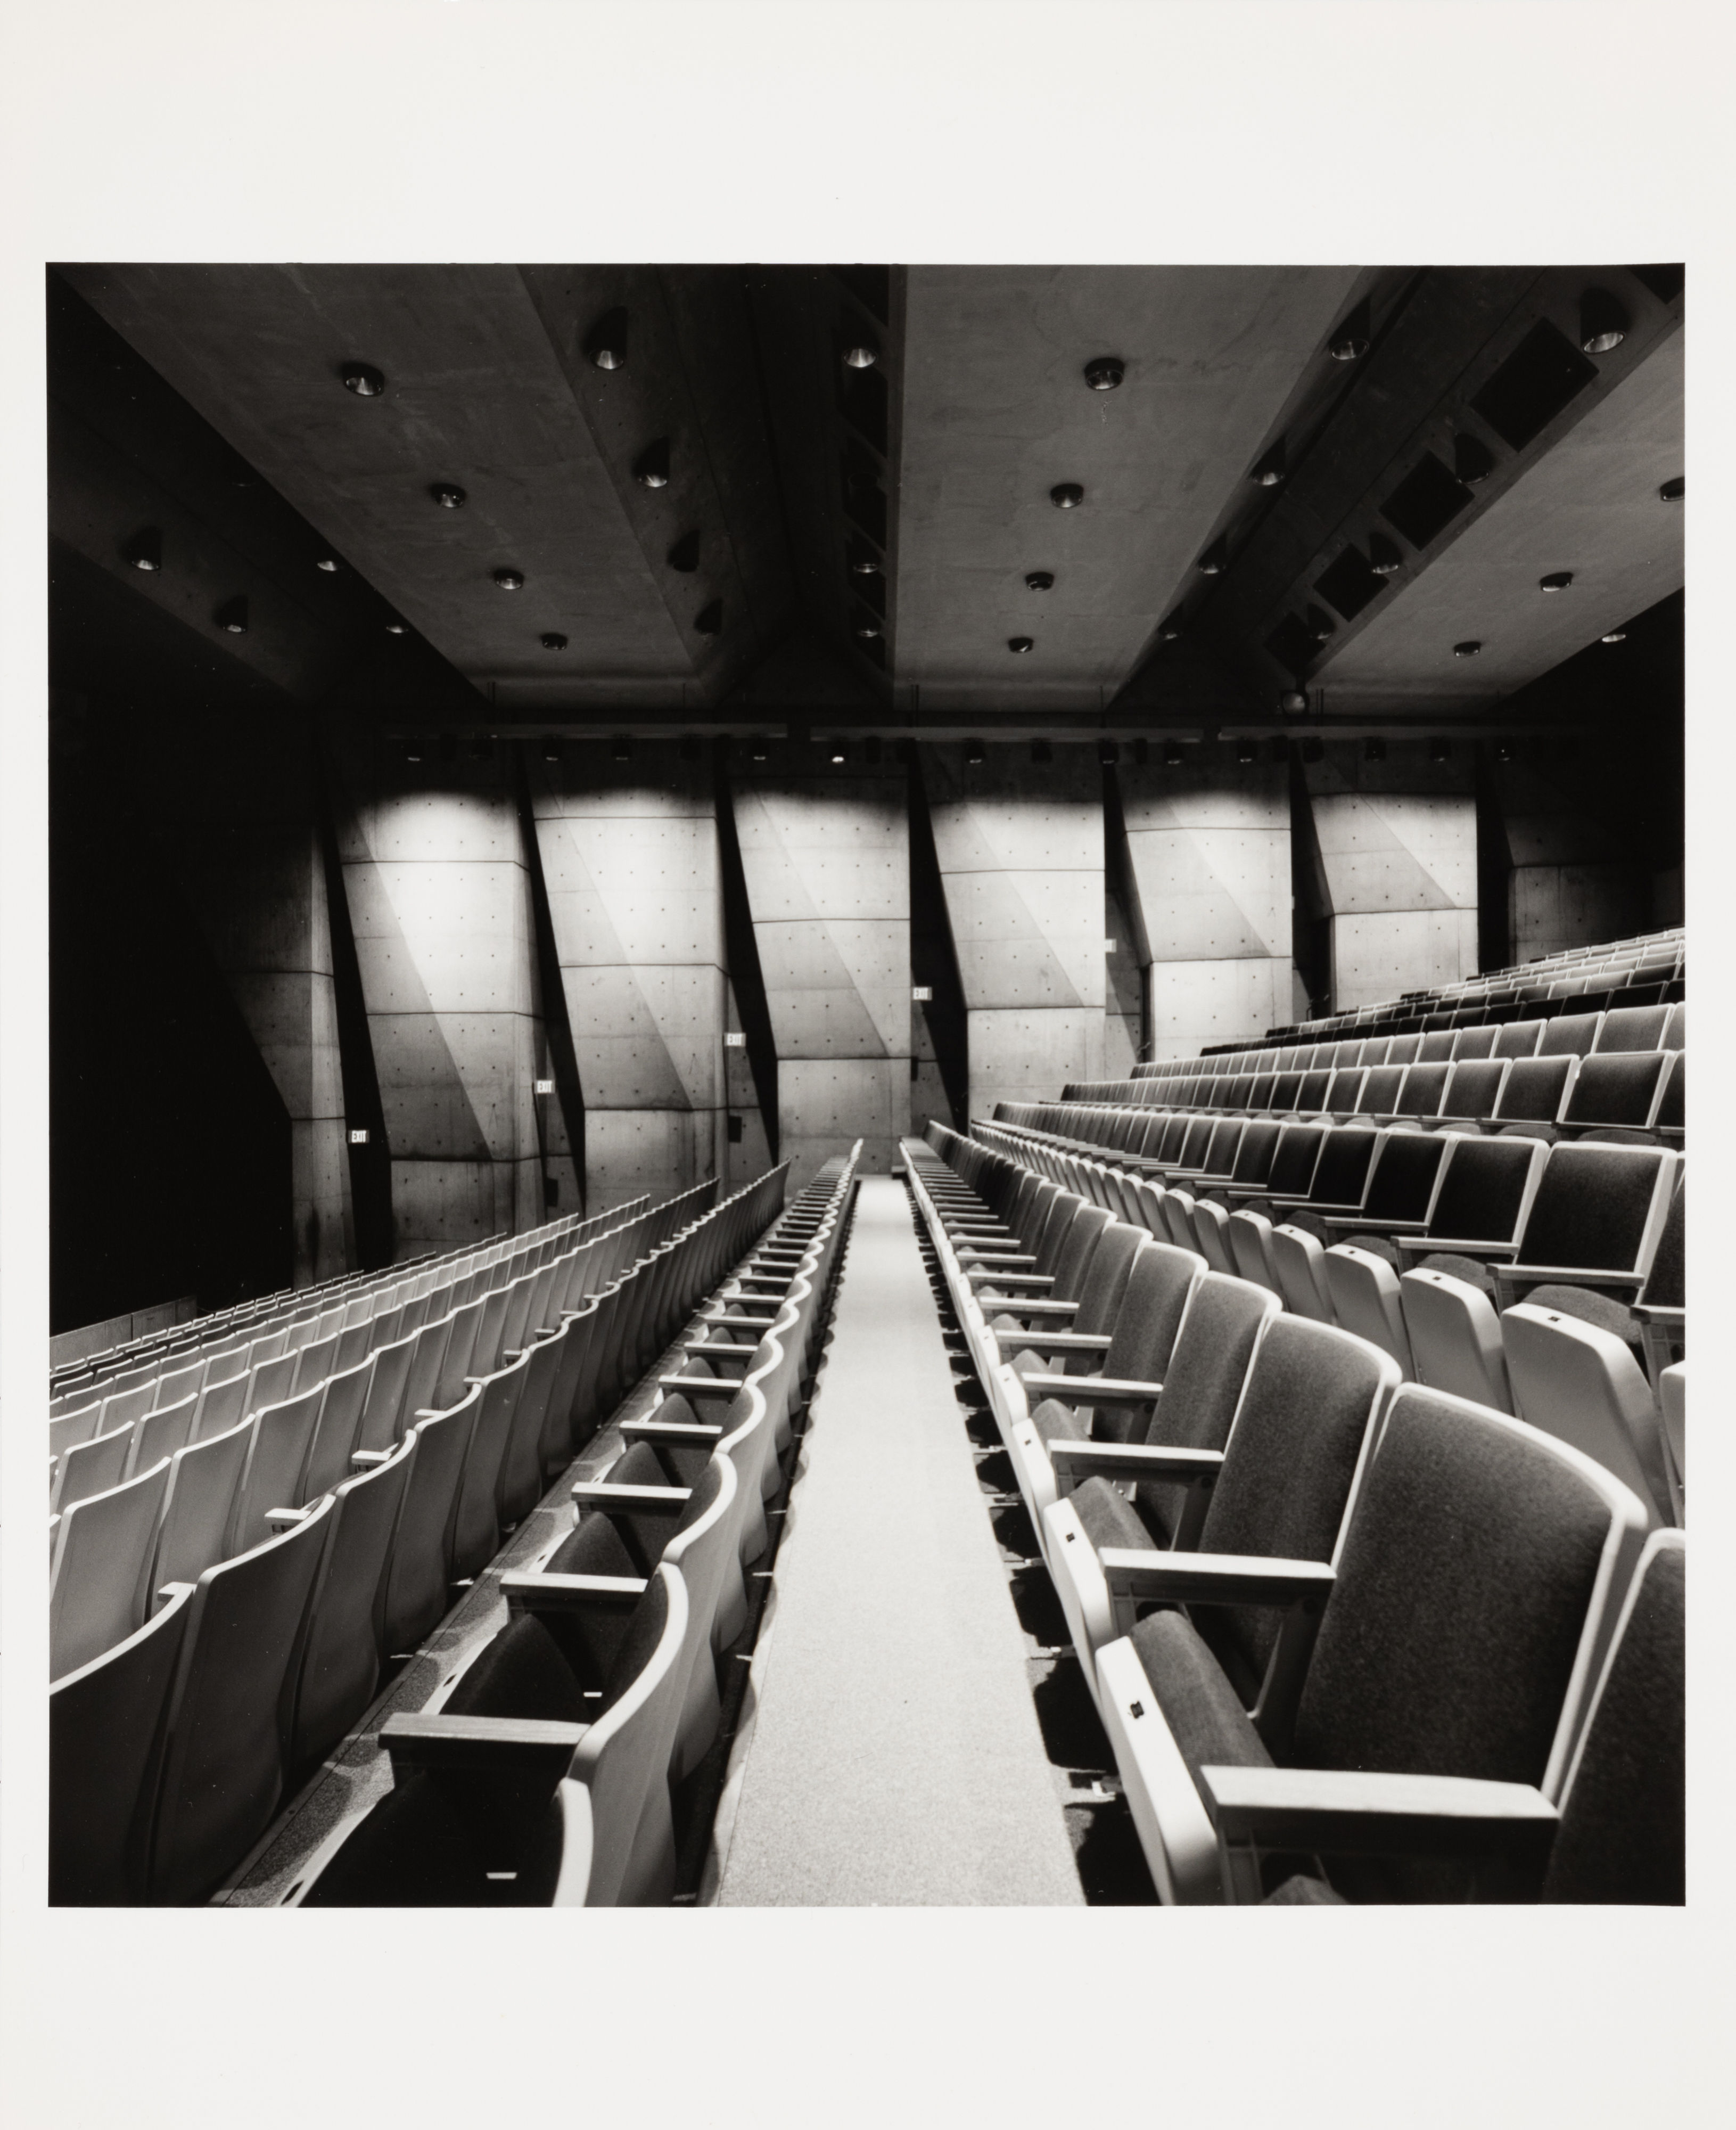 Roberto Schezen, Performing Arts Center, Fort Wayne, Indiana 1961-73, 2001 ca., Courtesy Fondazione MAXXI